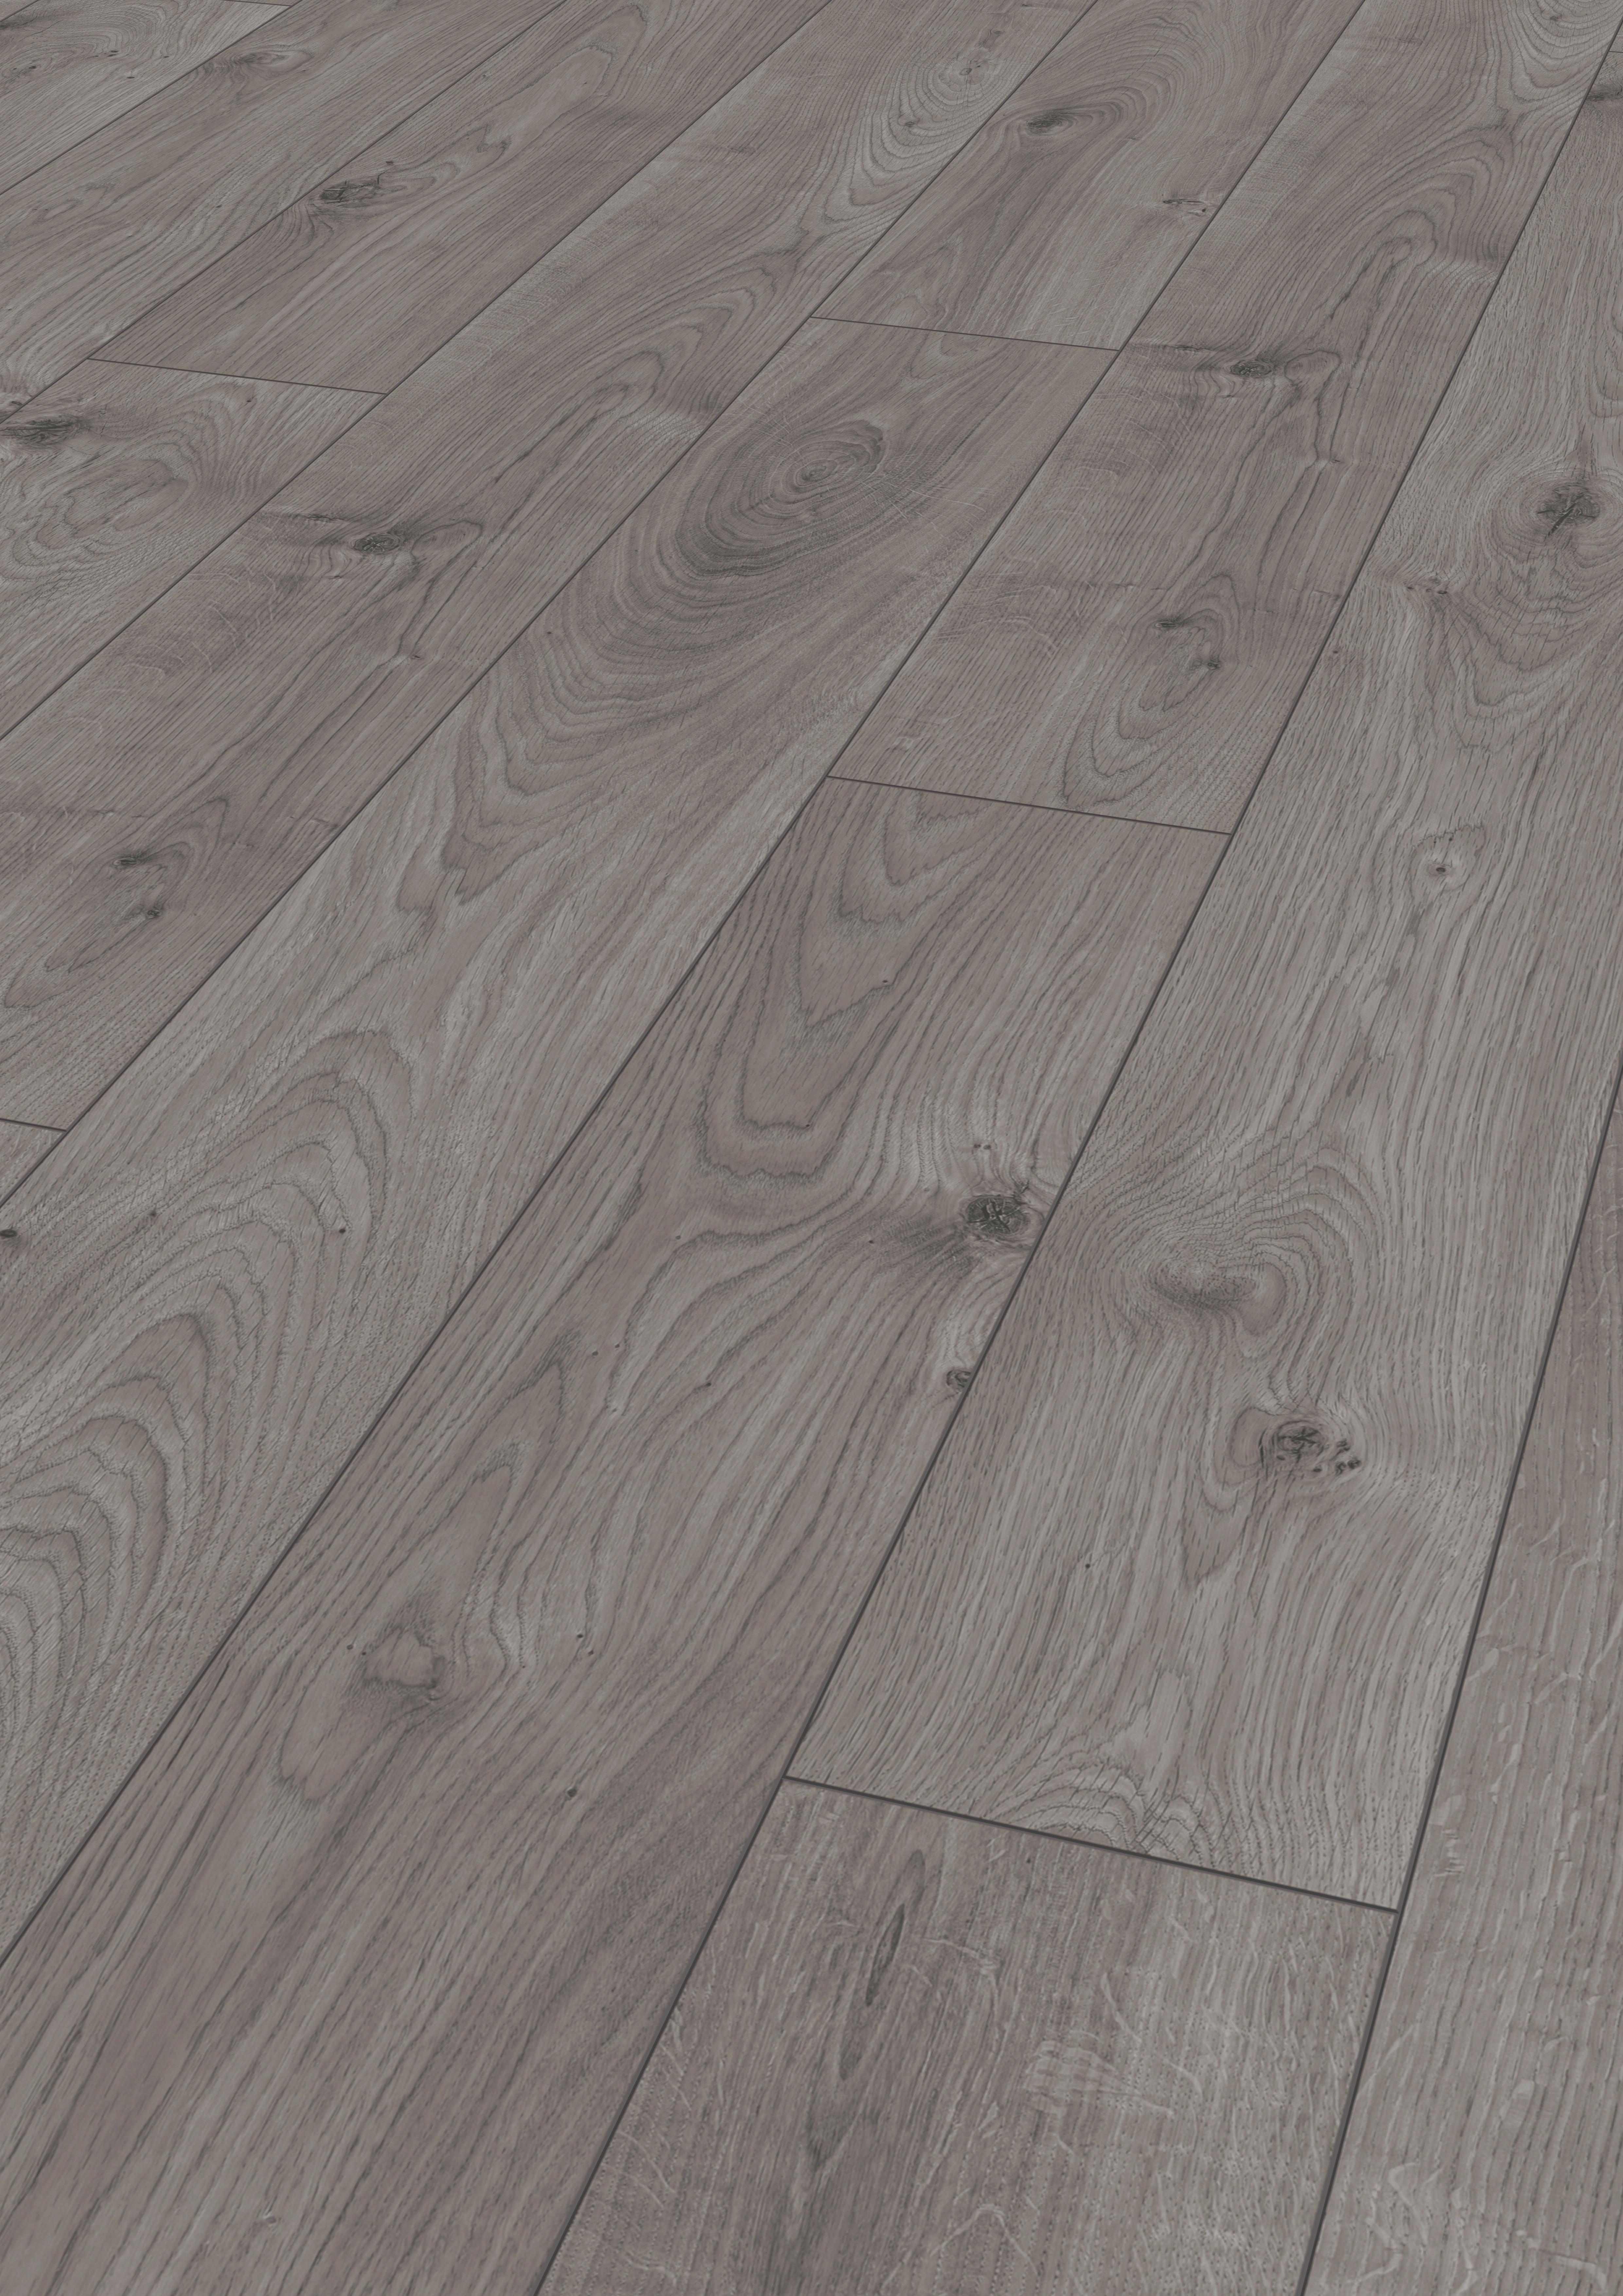 engineered hardwood flooring ottawa of mammut laminate flooring in country house plank style kronotex for download picture amp